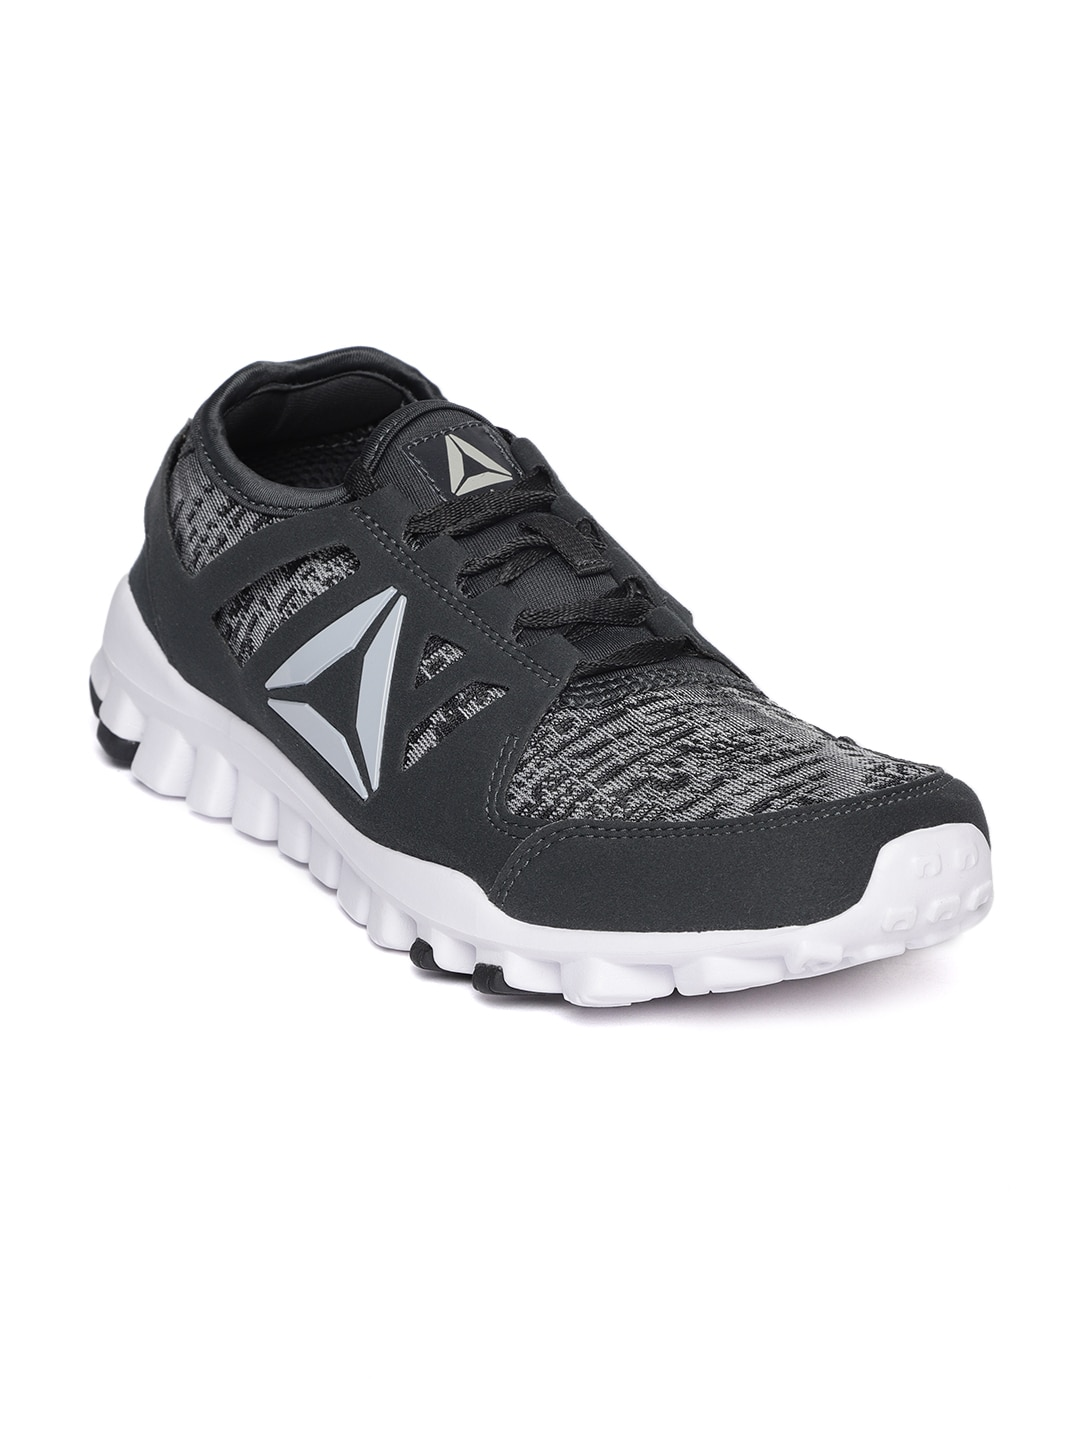 Buy Reebok Men Charcoal Grey Identity Flex Xtreme LP Running Shoes ... c883e3ce4